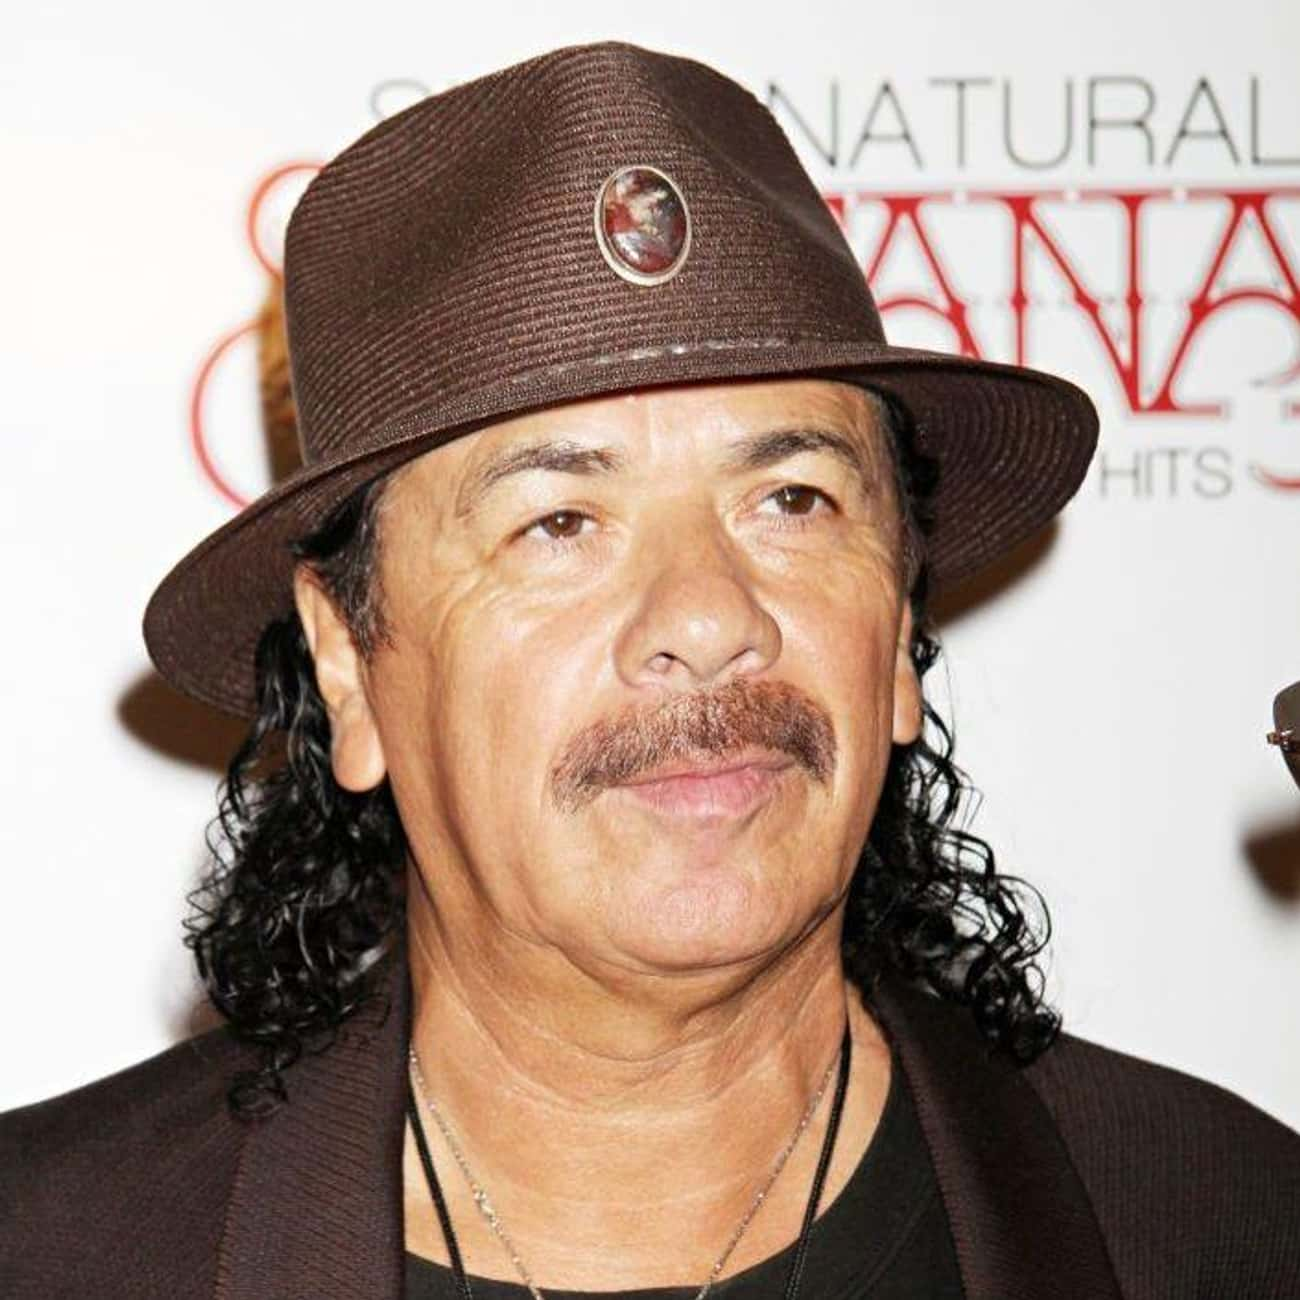 Carlos Santana is listed (or ranked) 3 on the list Celebrity Warriors Fans